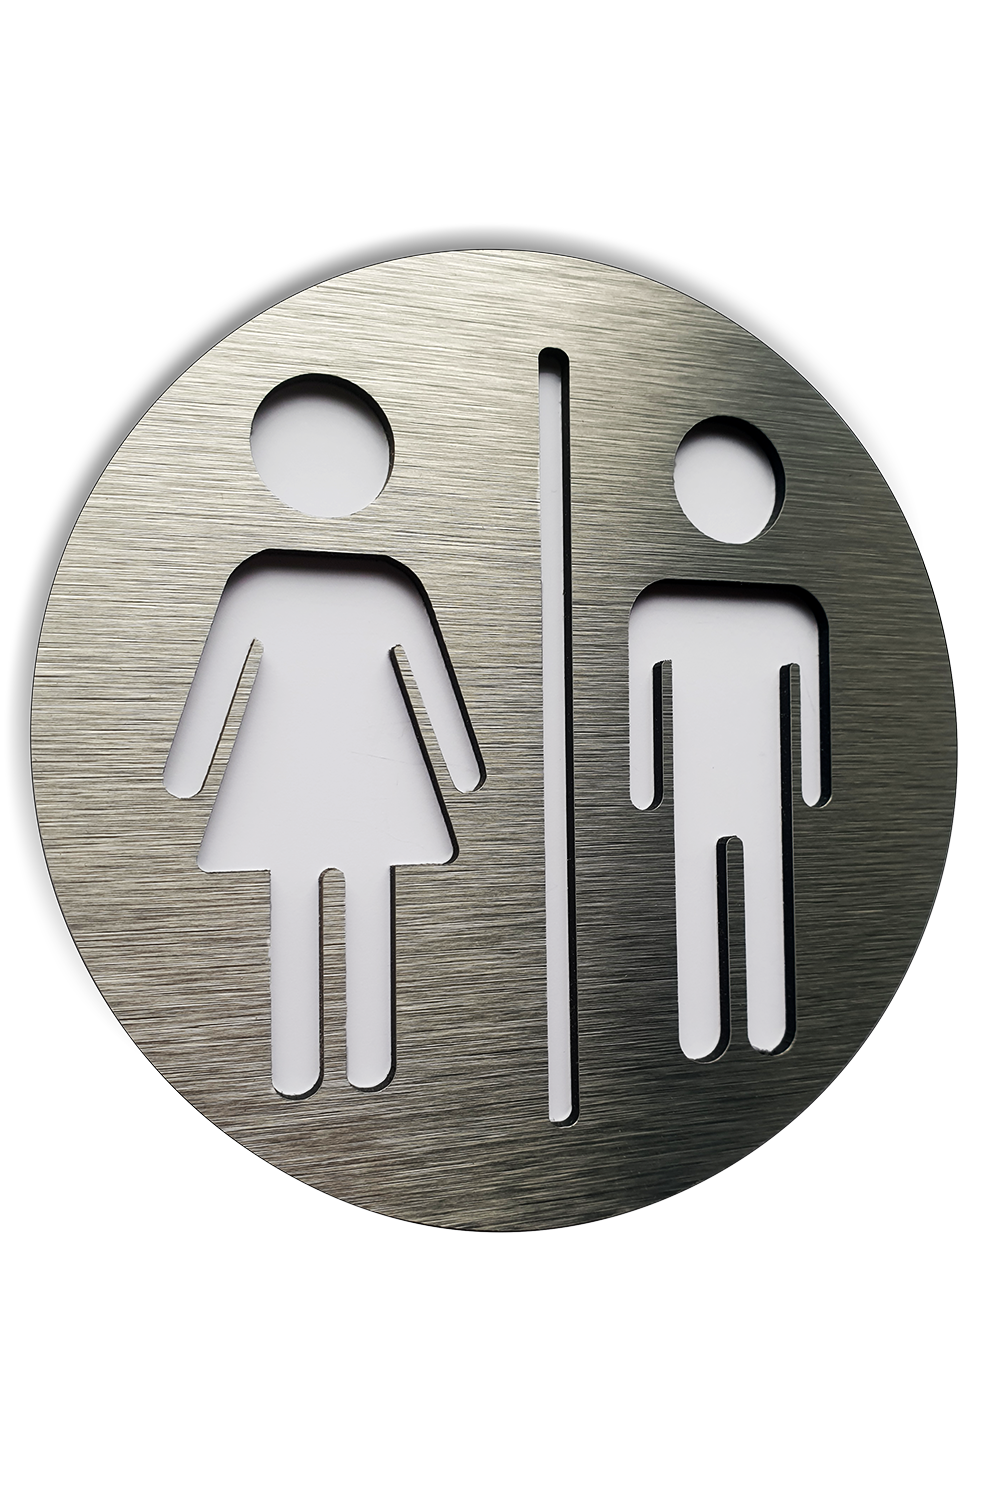 Silver Aluminium Male And Female Bathroom Sign Wc Square Signage Restroom 4 7 X 4 7 Plaque Bathroom Signs Sign Image Restroom Sign